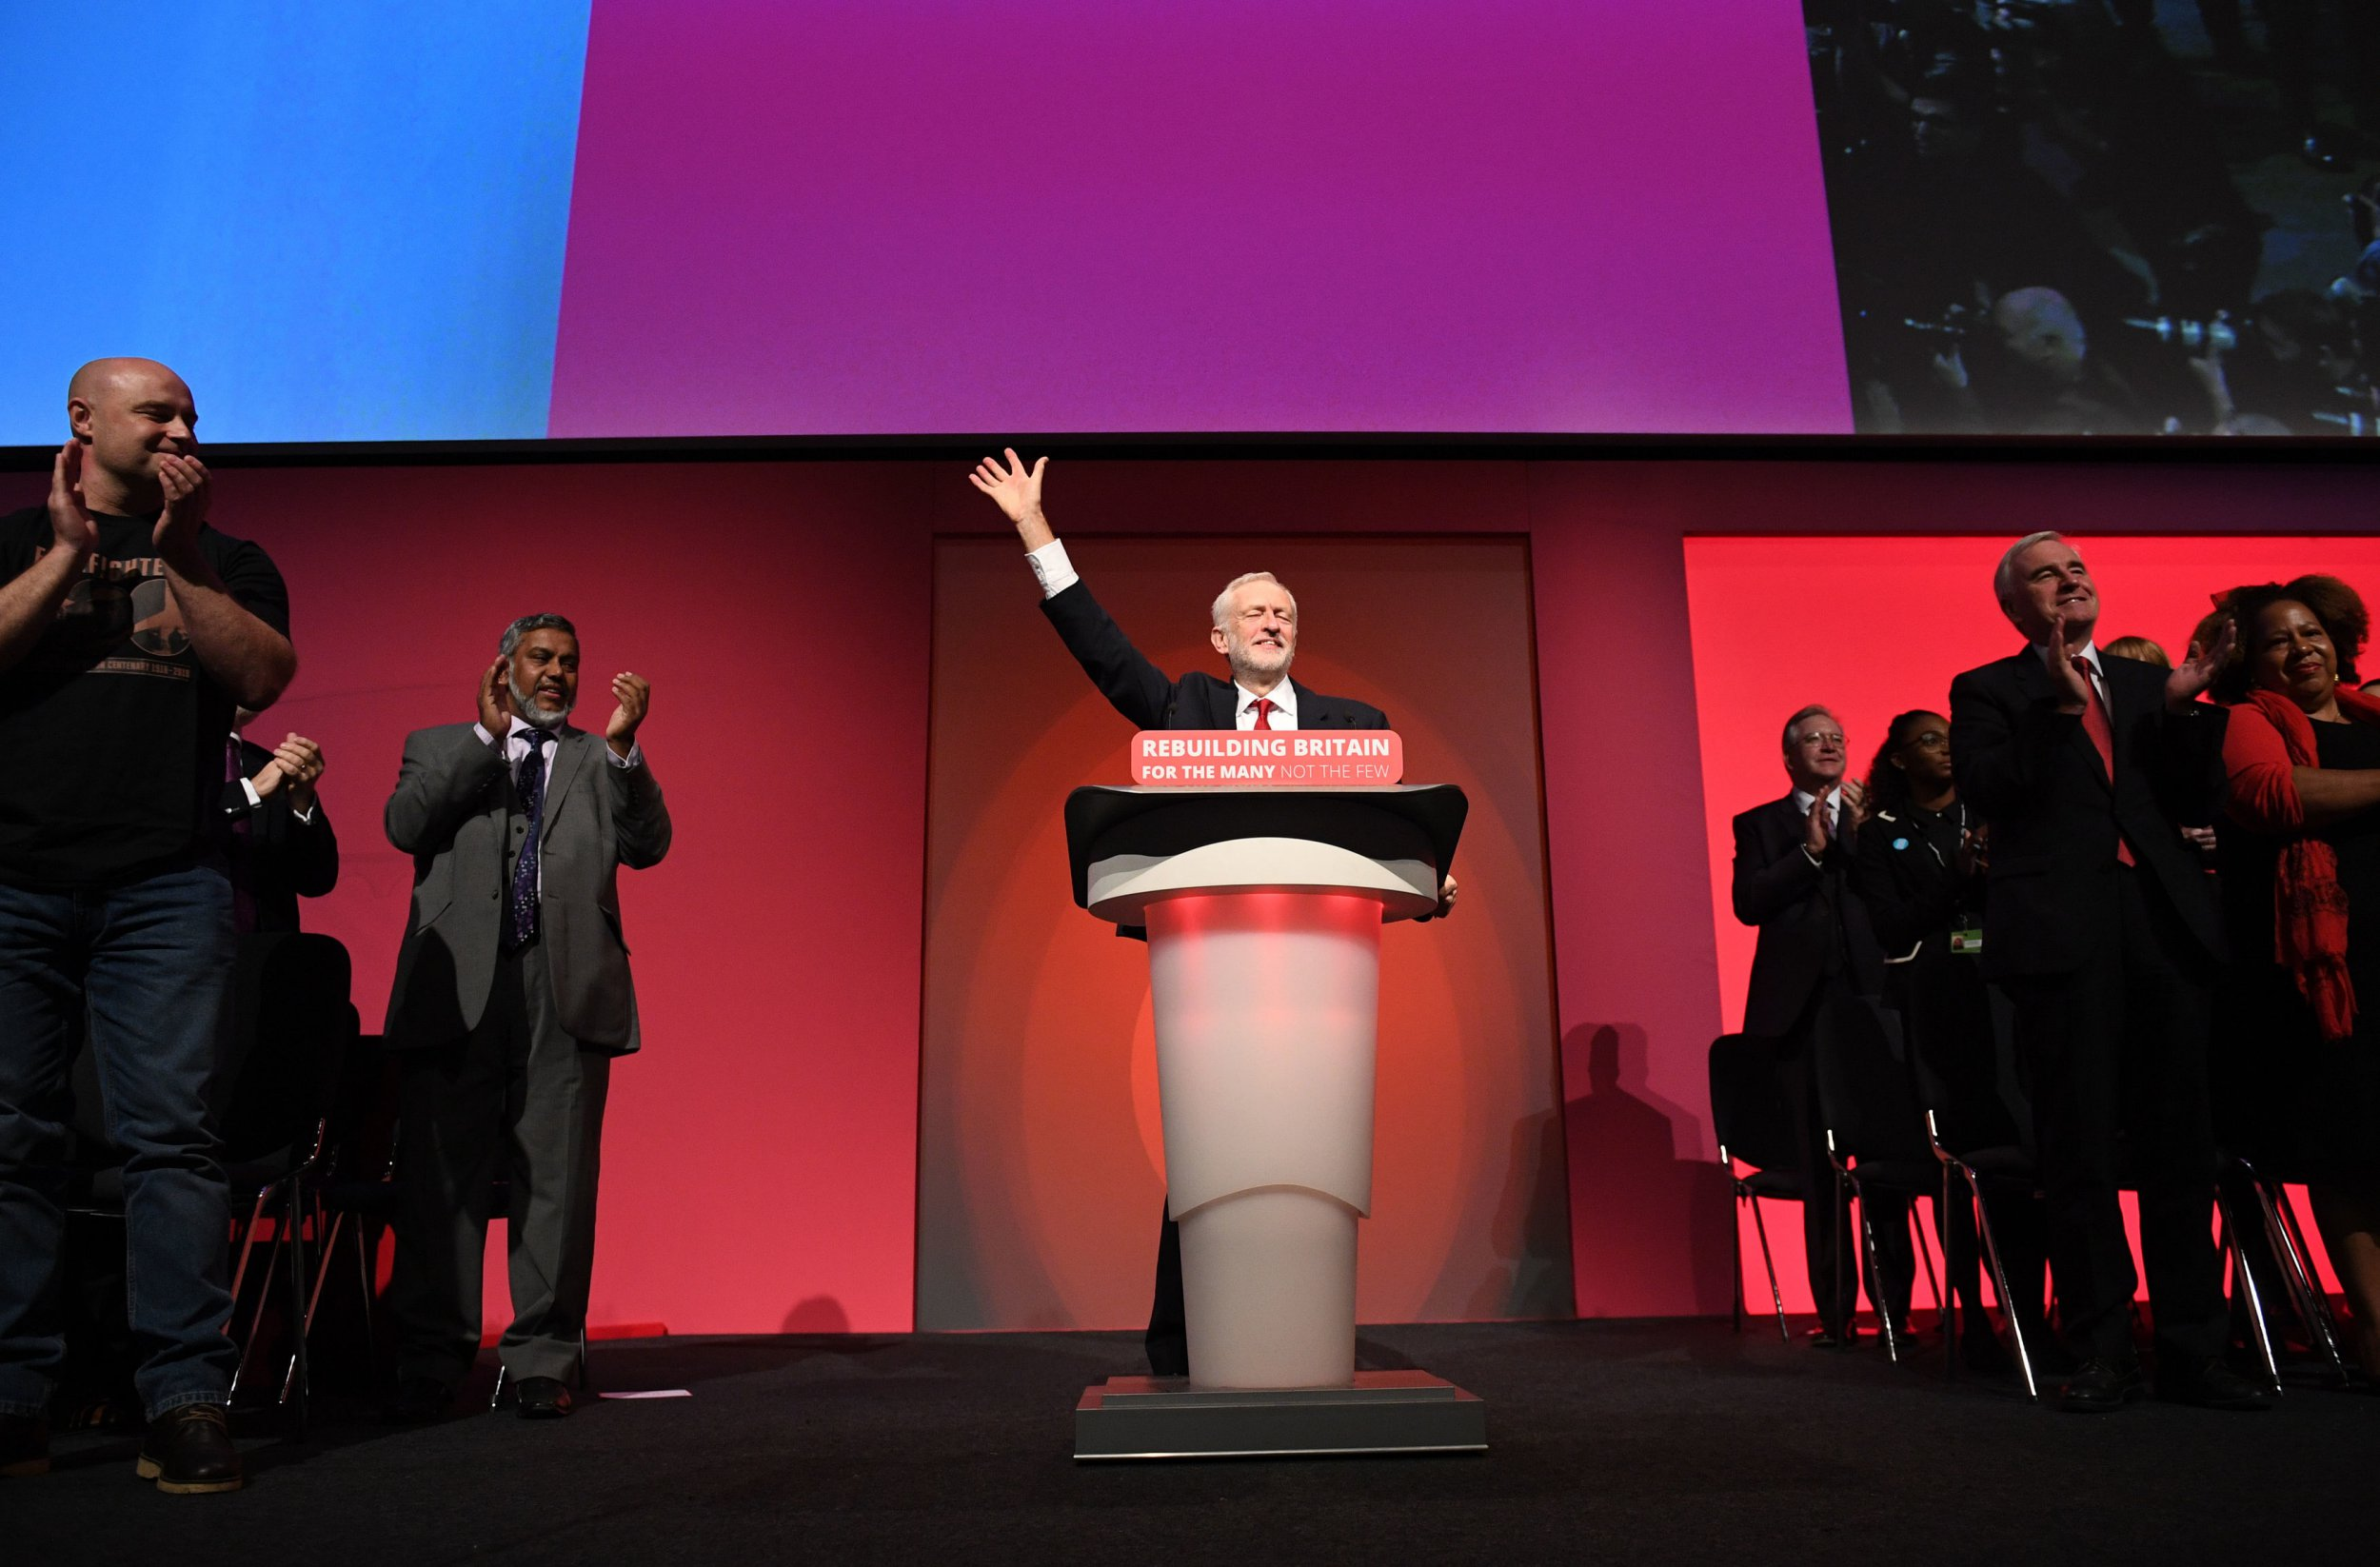 Labour leader Jeremy Corbyn giving his keynote speech at the party's annual conference at the Arena and Convention Centre (ACC), in Liverpool. PRESS ASSOCIATION Photo. Picture date: Wednesday September 26, 2018. See PA LABOUR stories. Photo credit should read: Stefan Rousseau/PA Wire